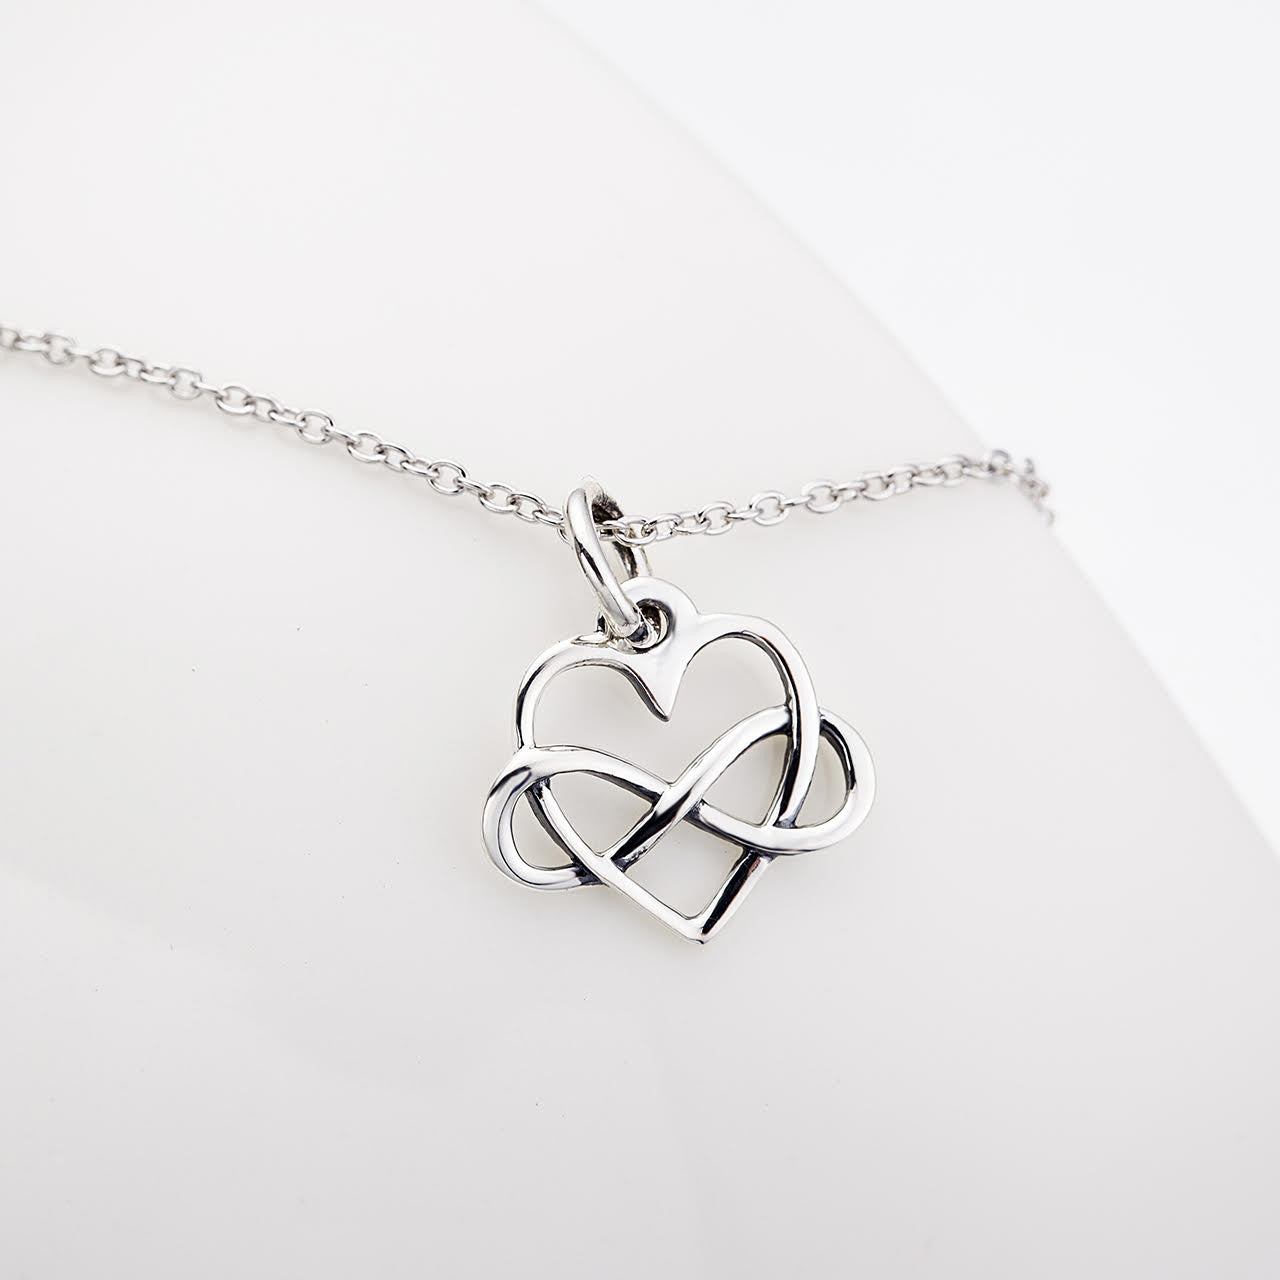 as something necklace romantic meaning dictionary will turquoise become forever in products blue or that sign necklaces the sn infinity infinite limitless never love btq silver behind has end stone is symbol details defined